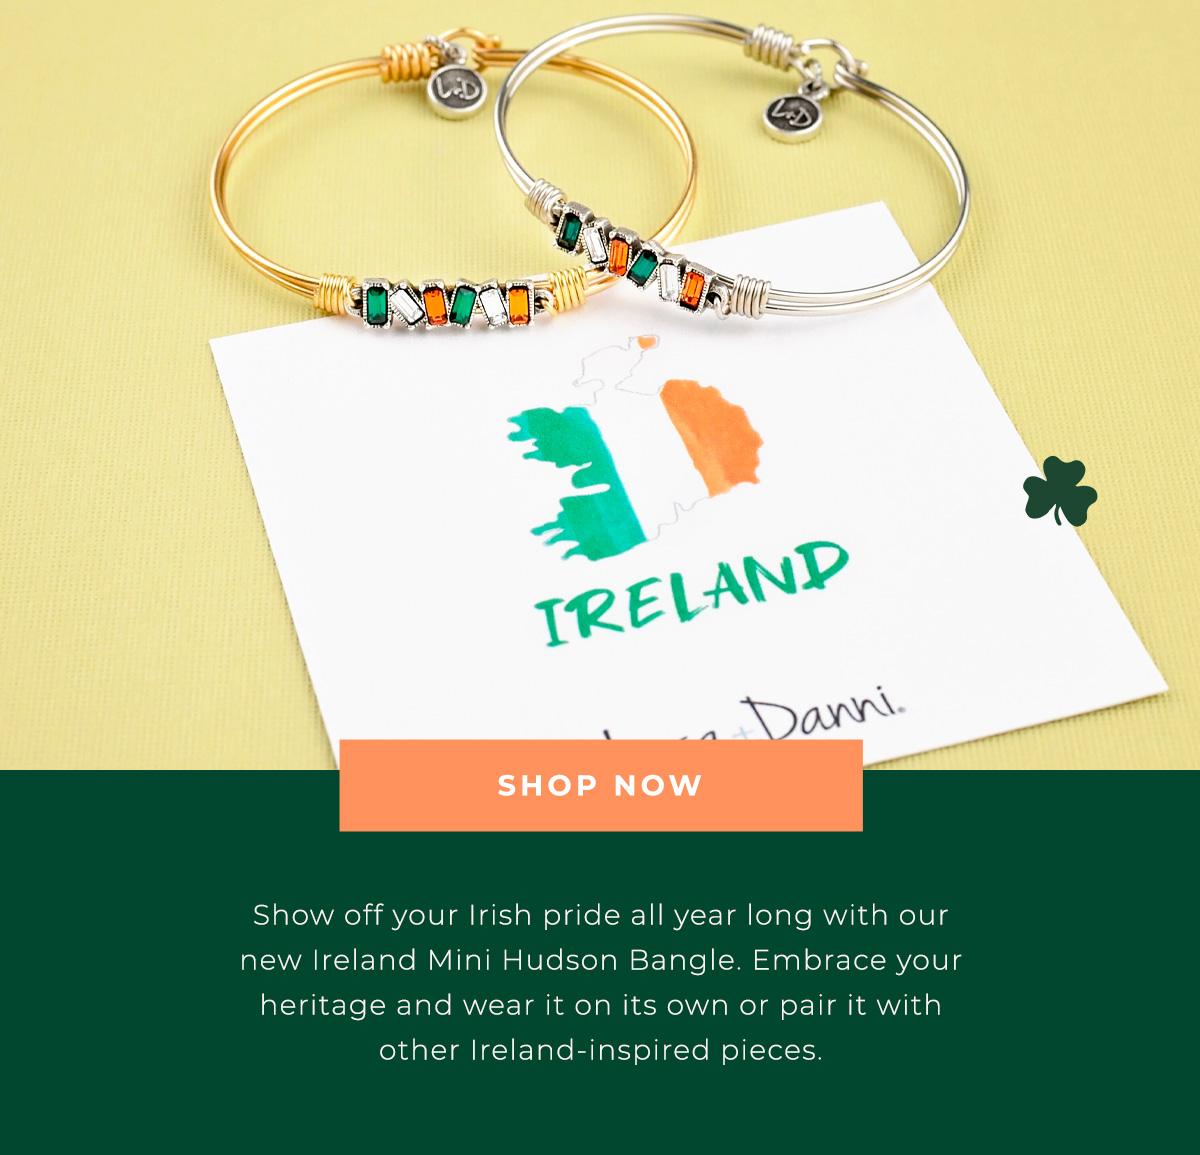 SHOP NOW | Show off your Irish pride all year long with our new Ireland Mini Hudson Bangle. Embrace your heritage and wear it on its own or pair it with other Ireland-inspired pieces.